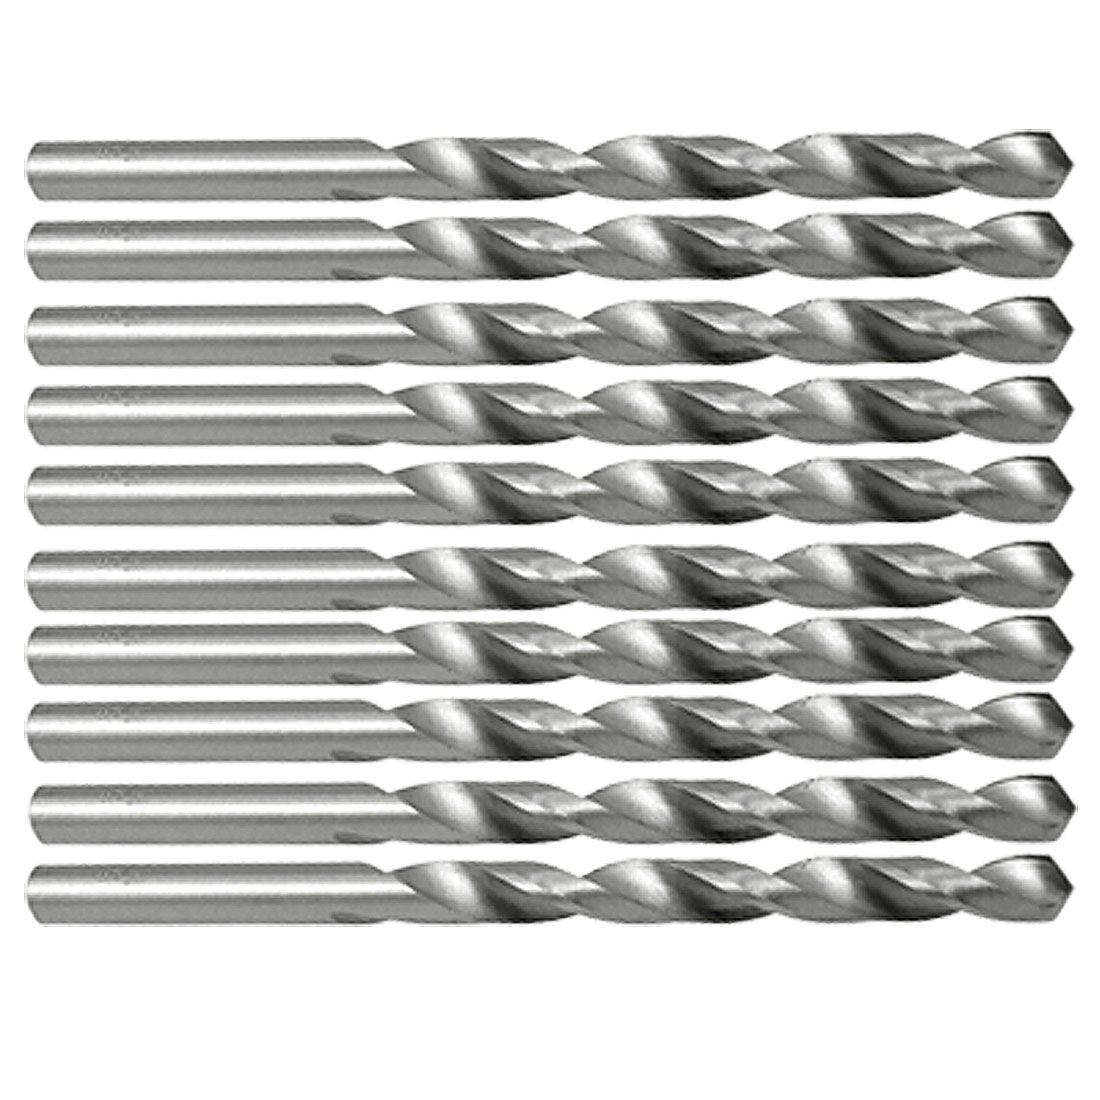 5.6mm Diameter Straight Shank HSS Steel Twist Drill Bits 10pcs